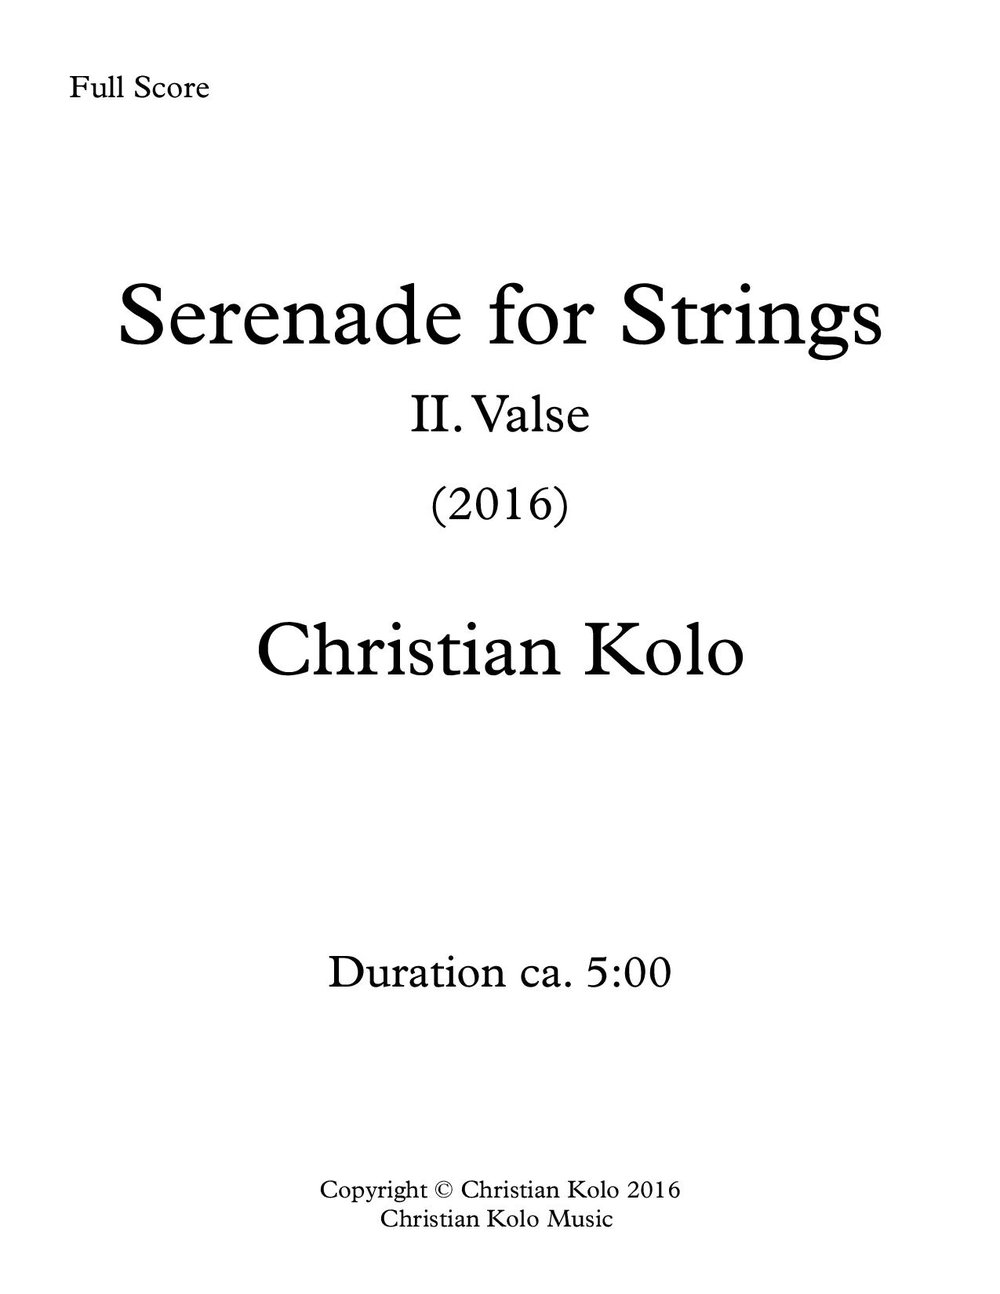 Serenade For Strings (Valse) (Works Cover).jpg